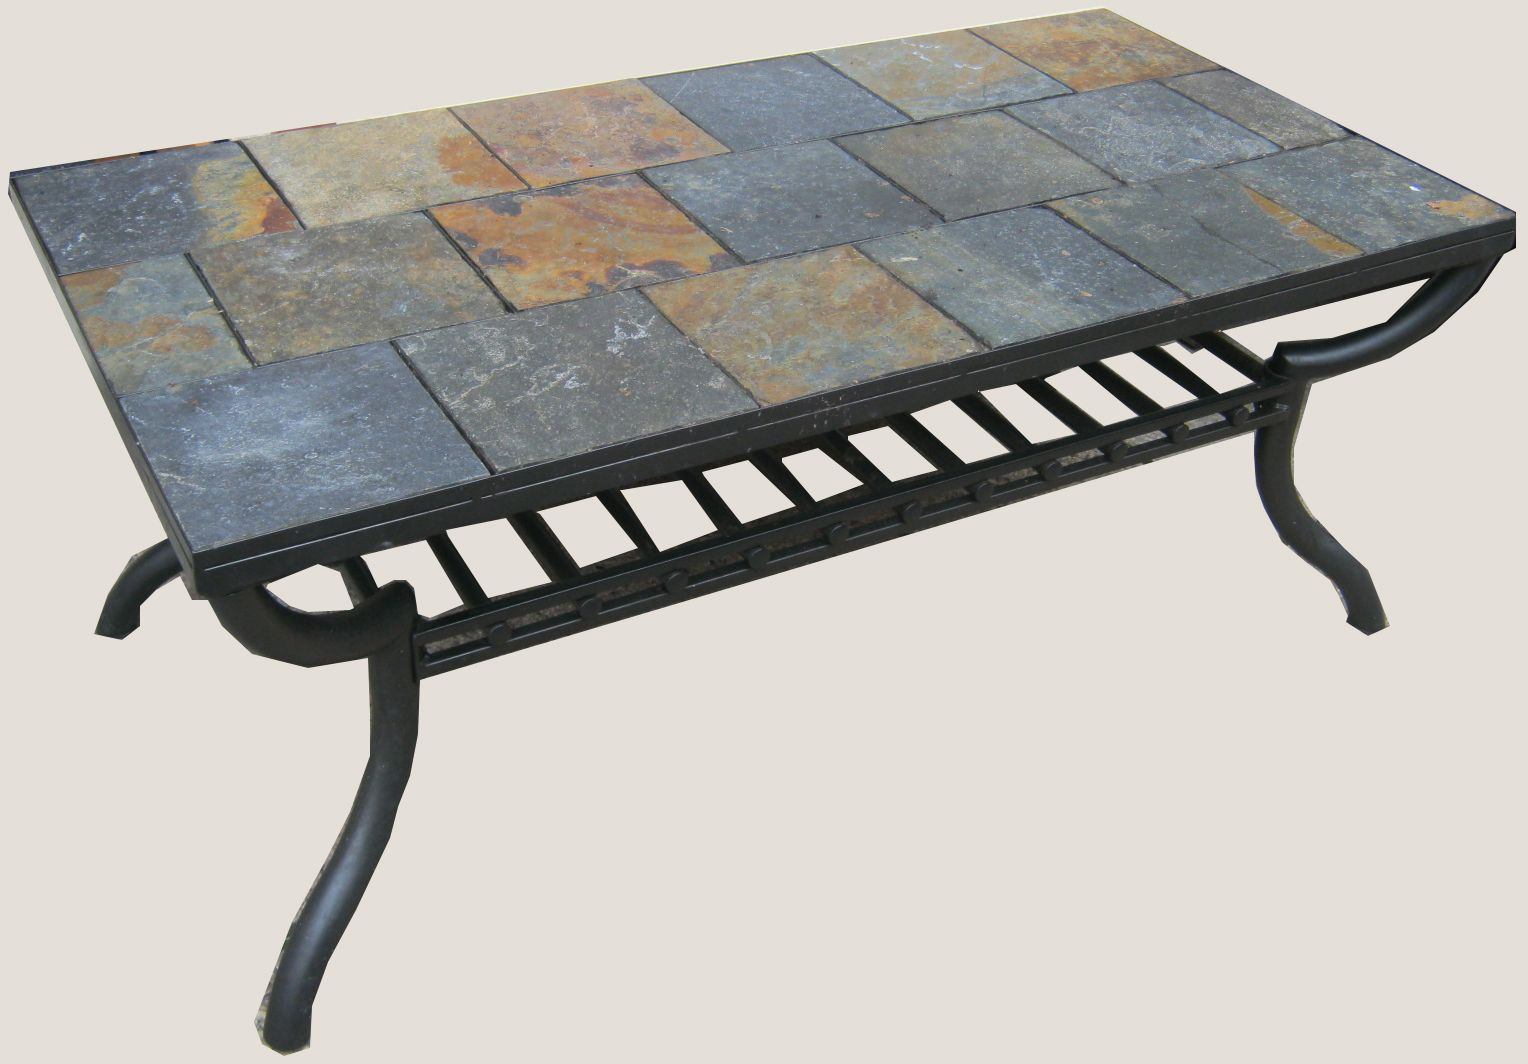 Outdoor Tables With Tile Tops Slate Tile Coffee Table Sold